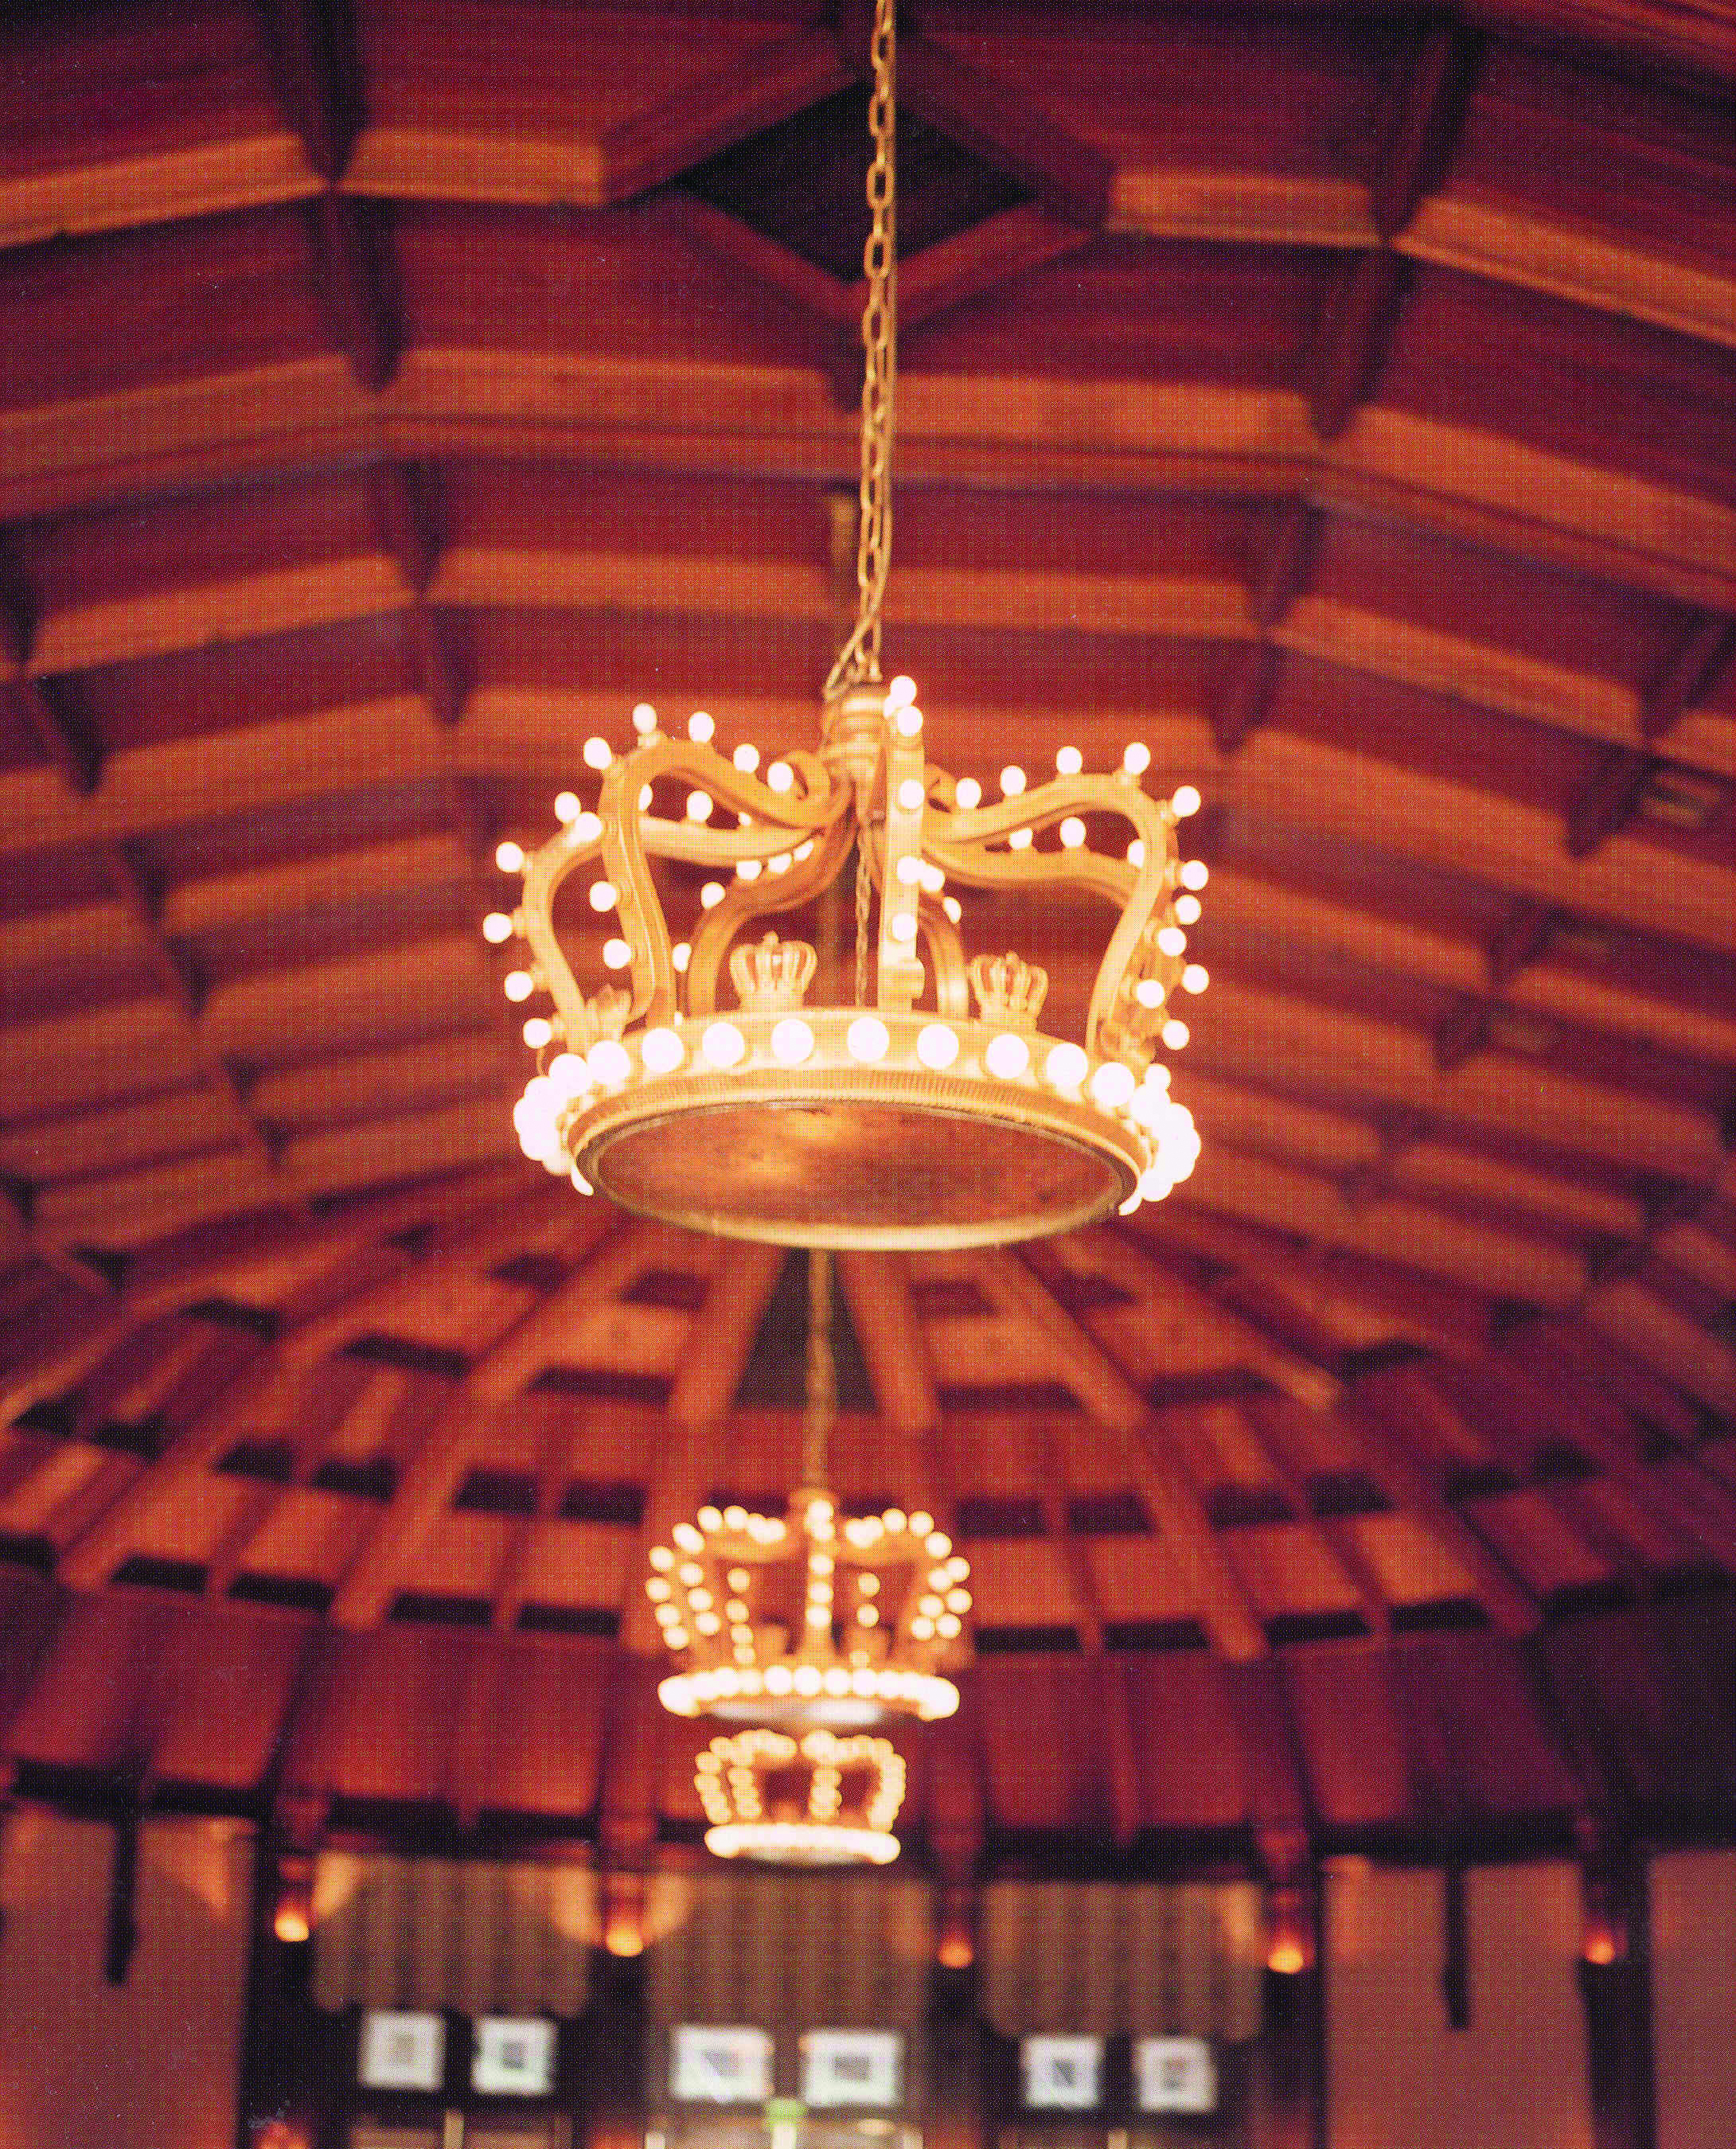 Crown room chandeliers by baum at the del